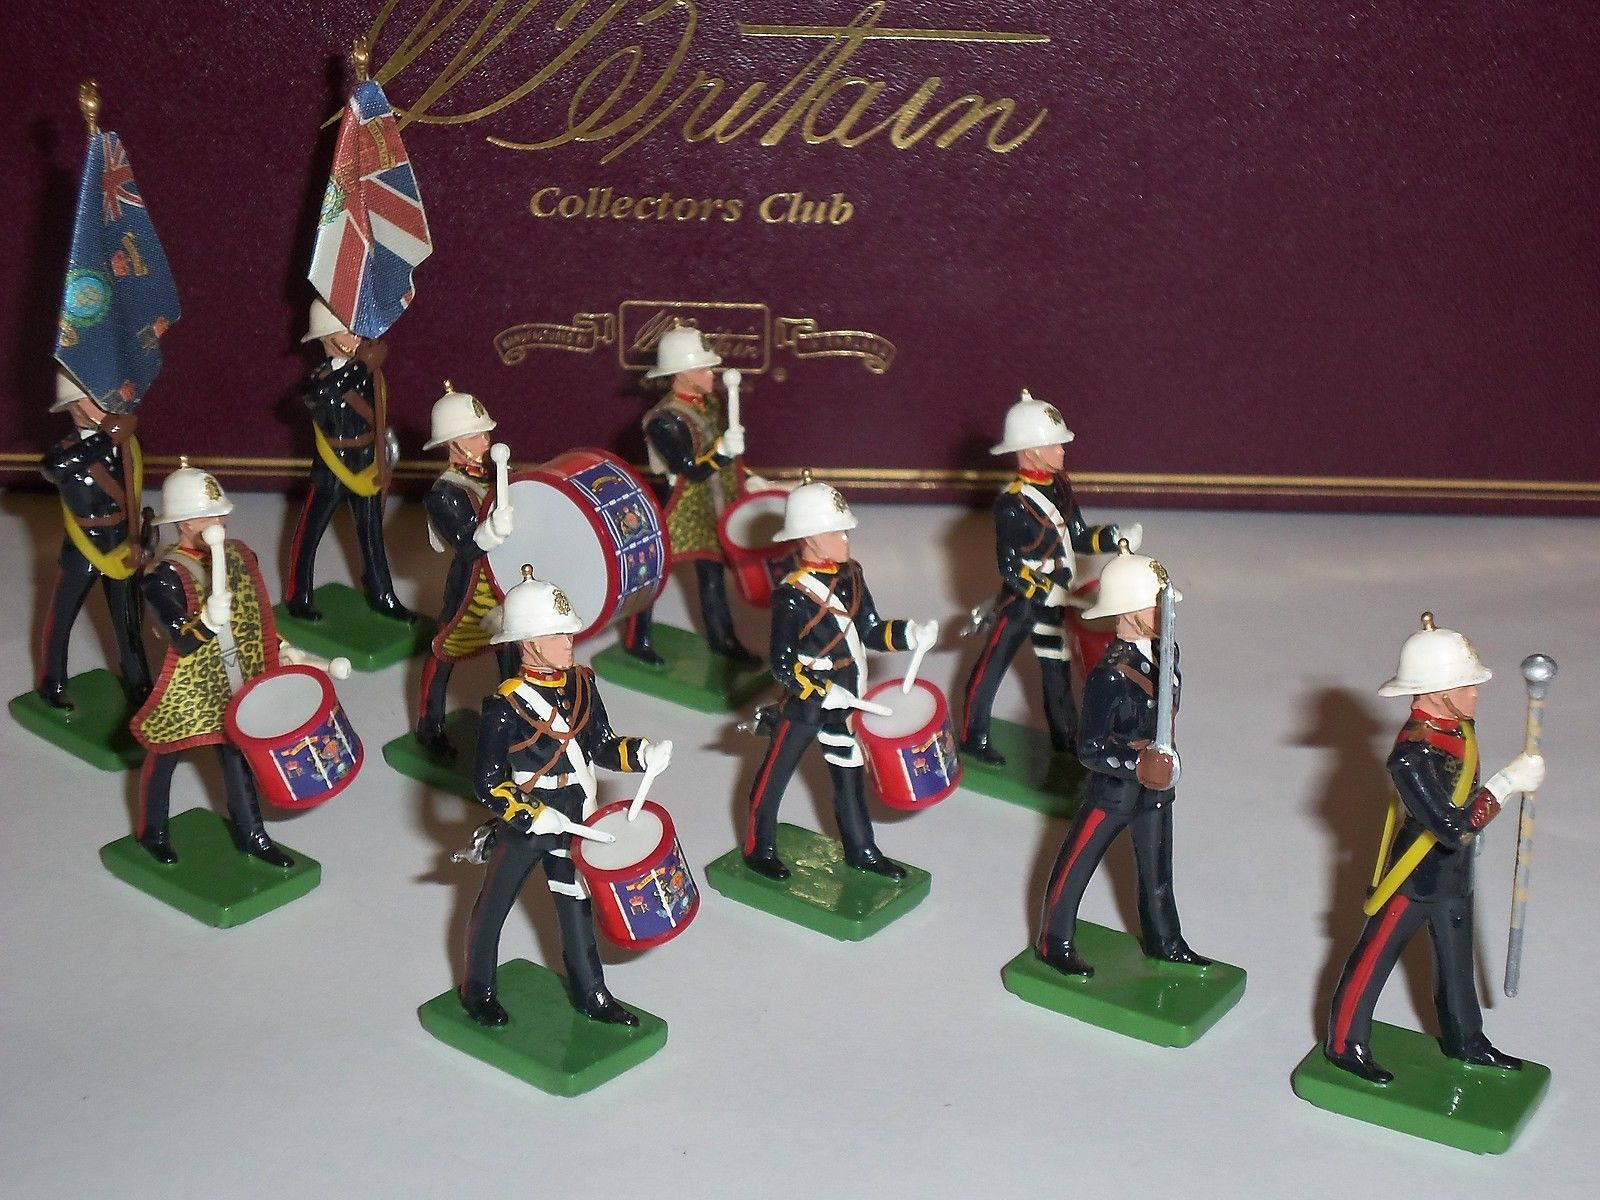 Band Game Toy : Britains collectors club royal marine limited edition